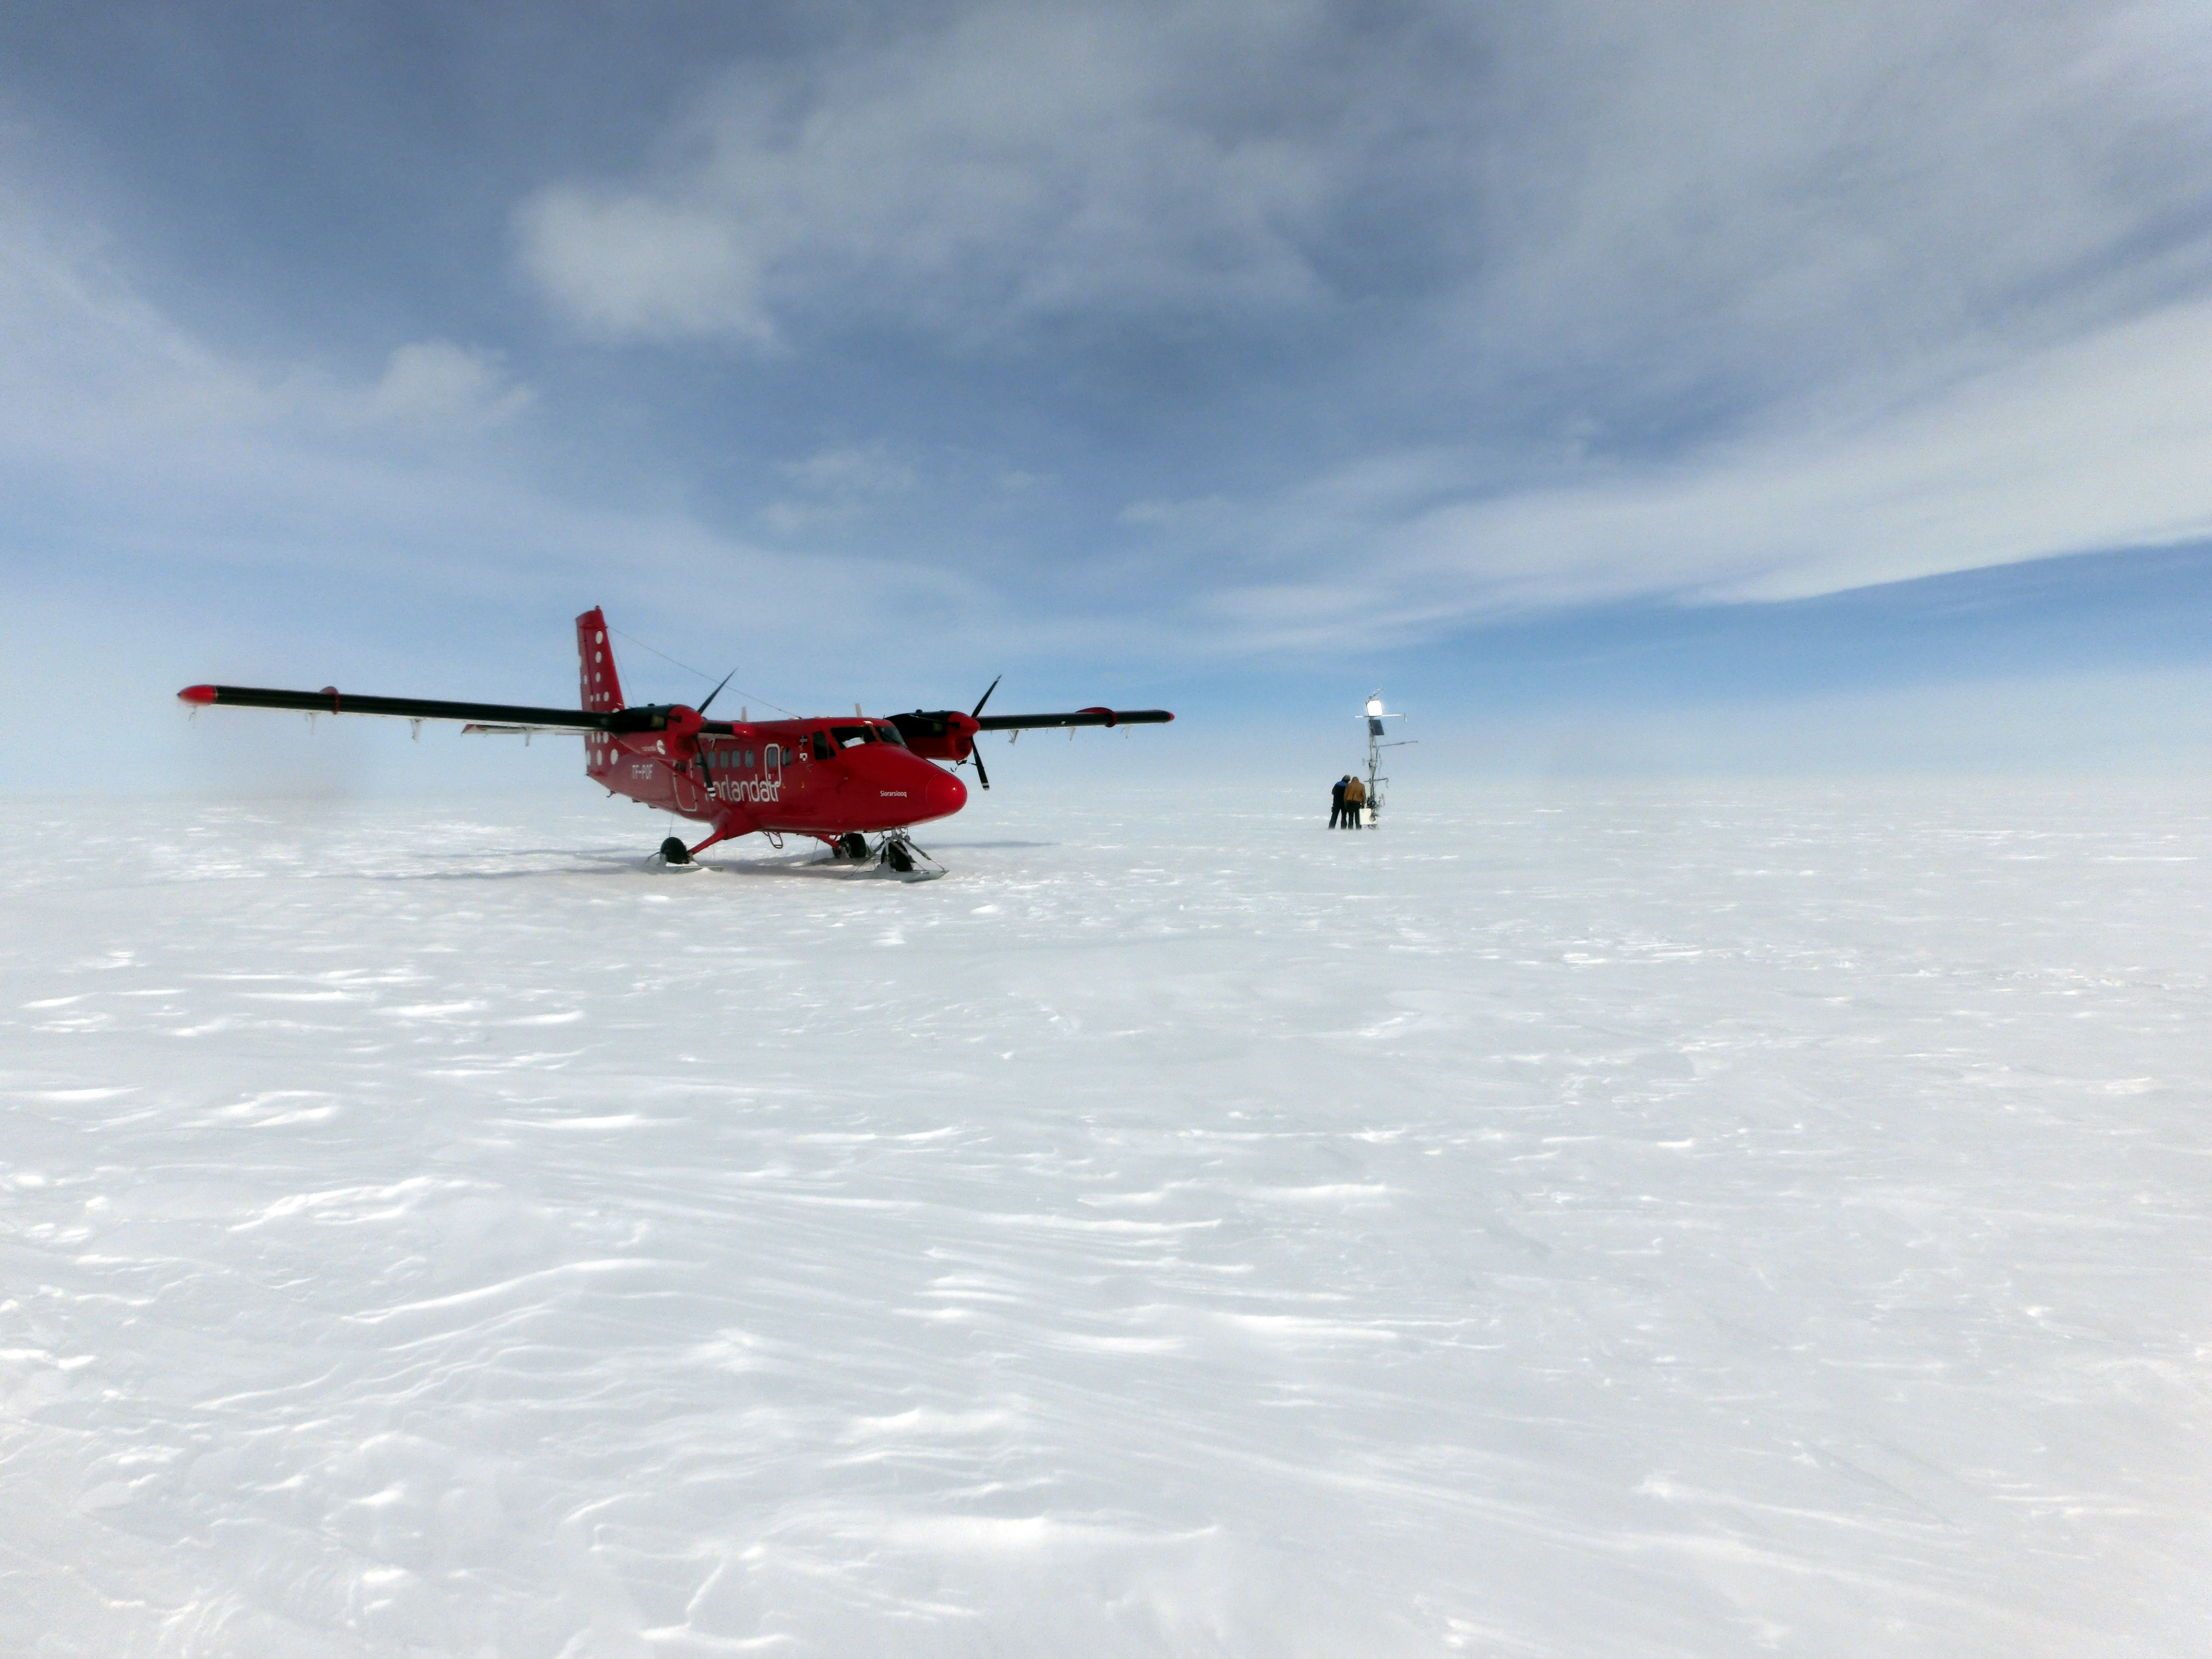 File:Twin Otter near a weather station on Greenland ice sheet jpg